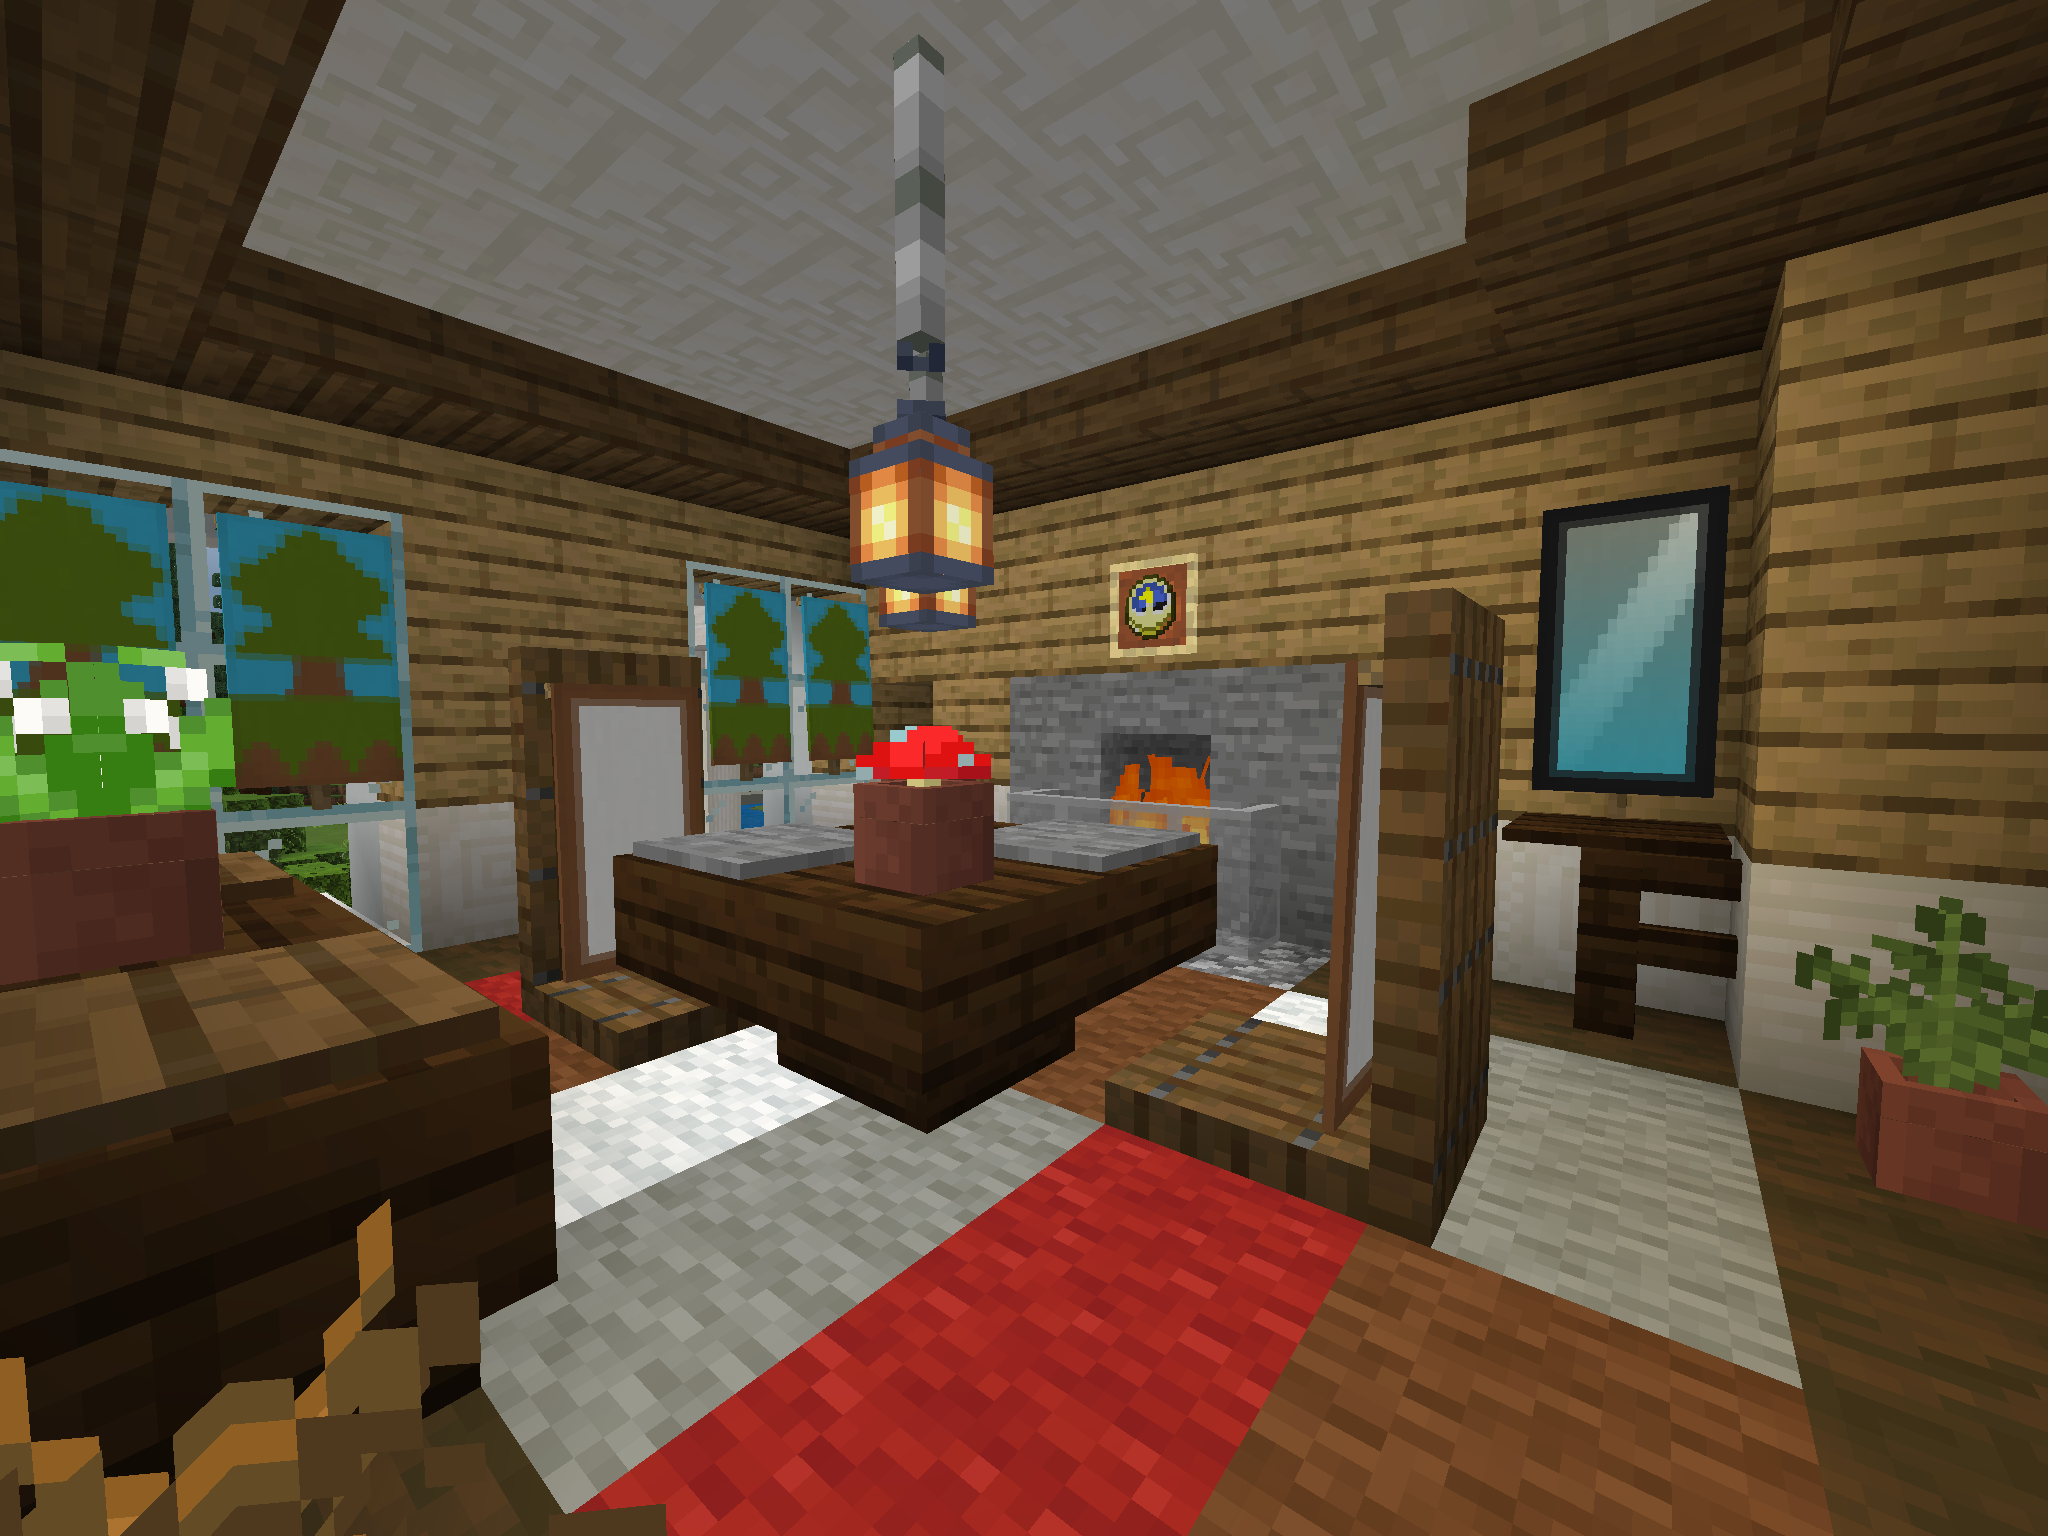 Private Dining Room Minecraft Interior Design Minecraft Designs Minecraft Houses